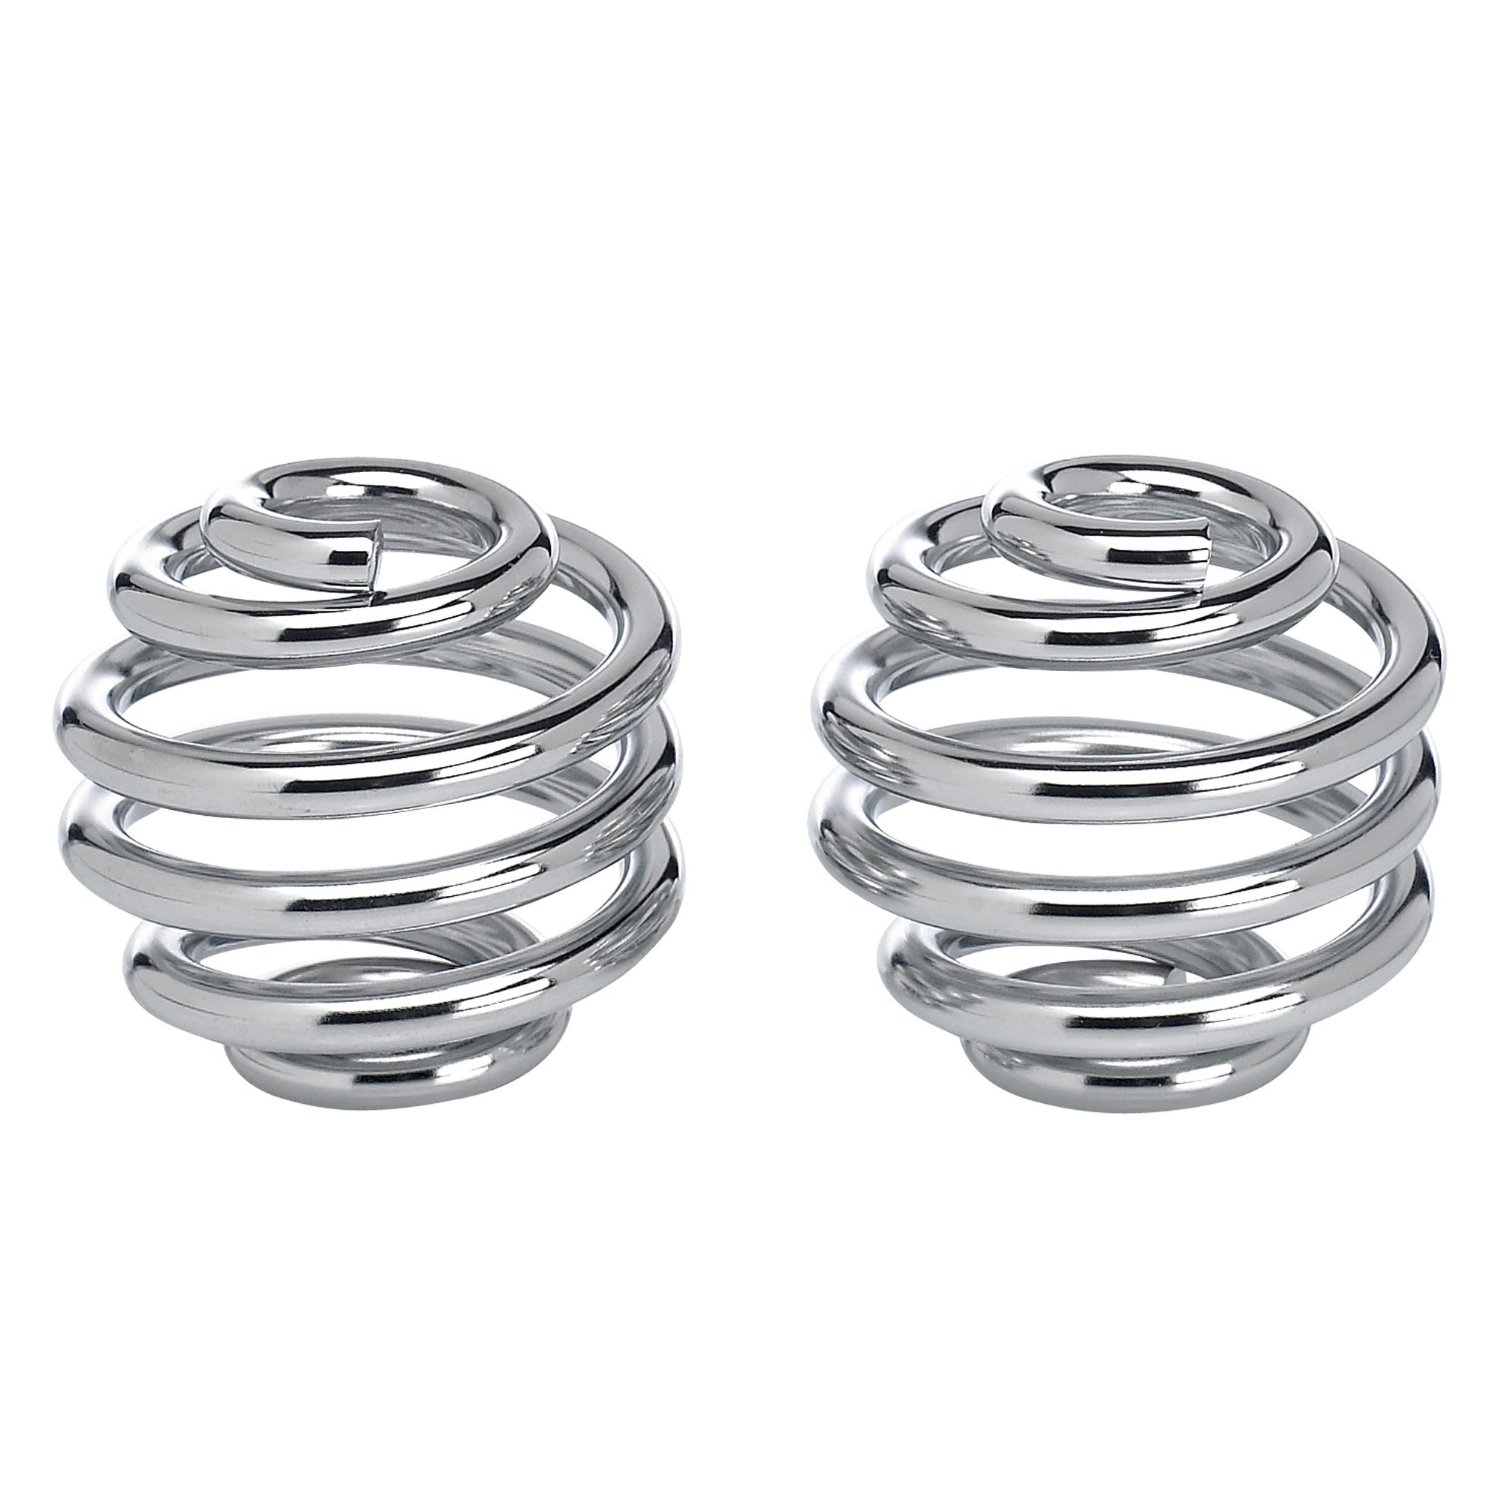 Solo Seat Springs 2 inch Barrel Chrome